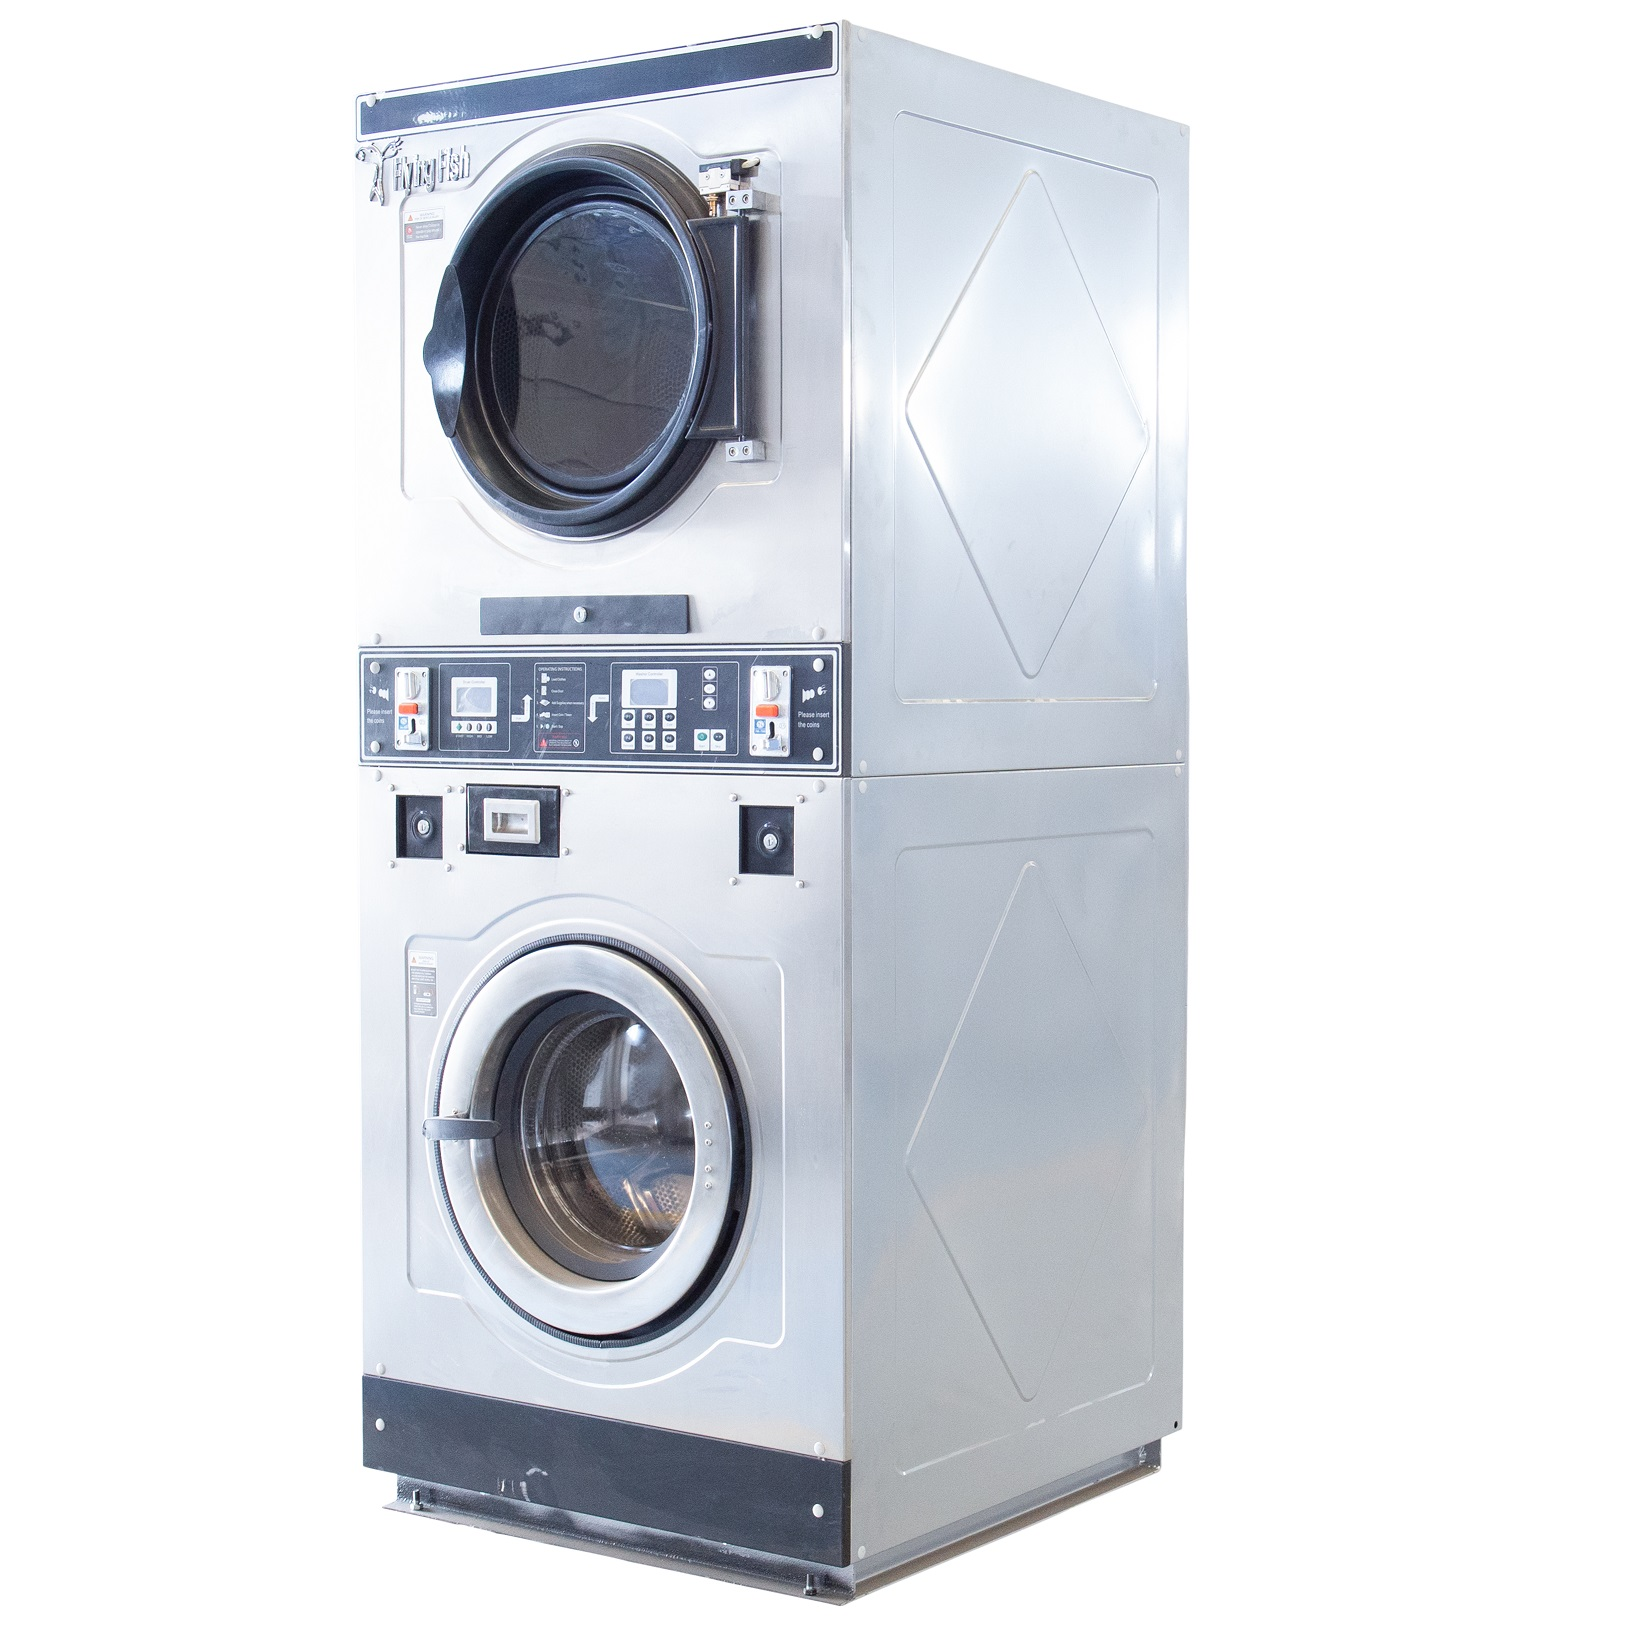 Stacked Washer And Dryer,Commercial Laundry Equipment,Washing Machine,Self  Service,Coin Operated - Buy Commercial Laundry Equipment,Commercial Washing